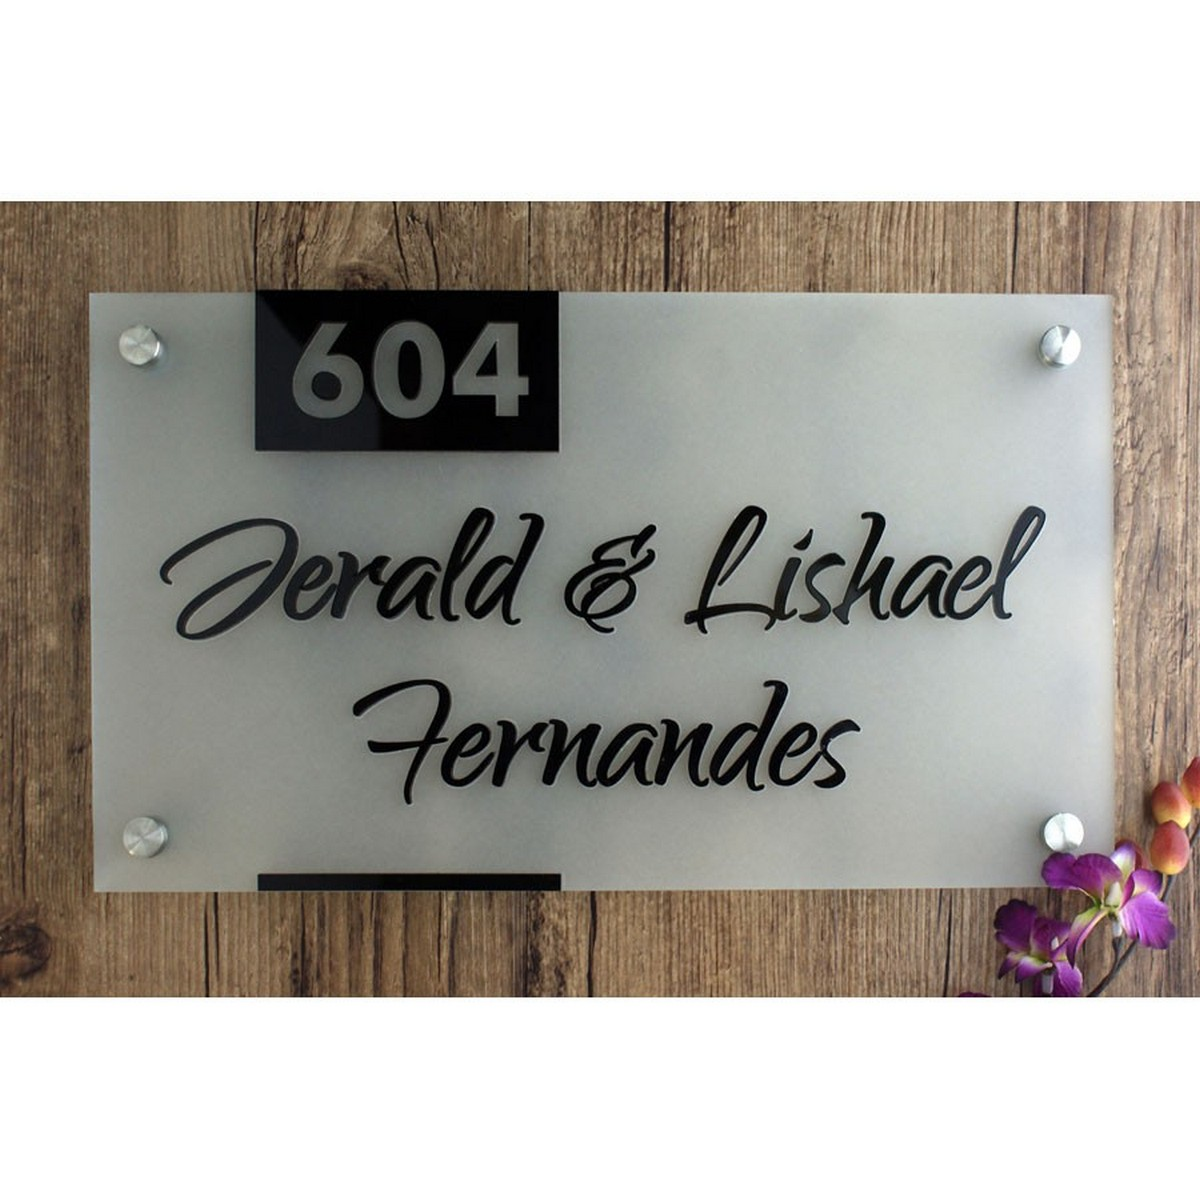 Customized Frosted Acrylic House Name Plate  frosted acrylic name plate